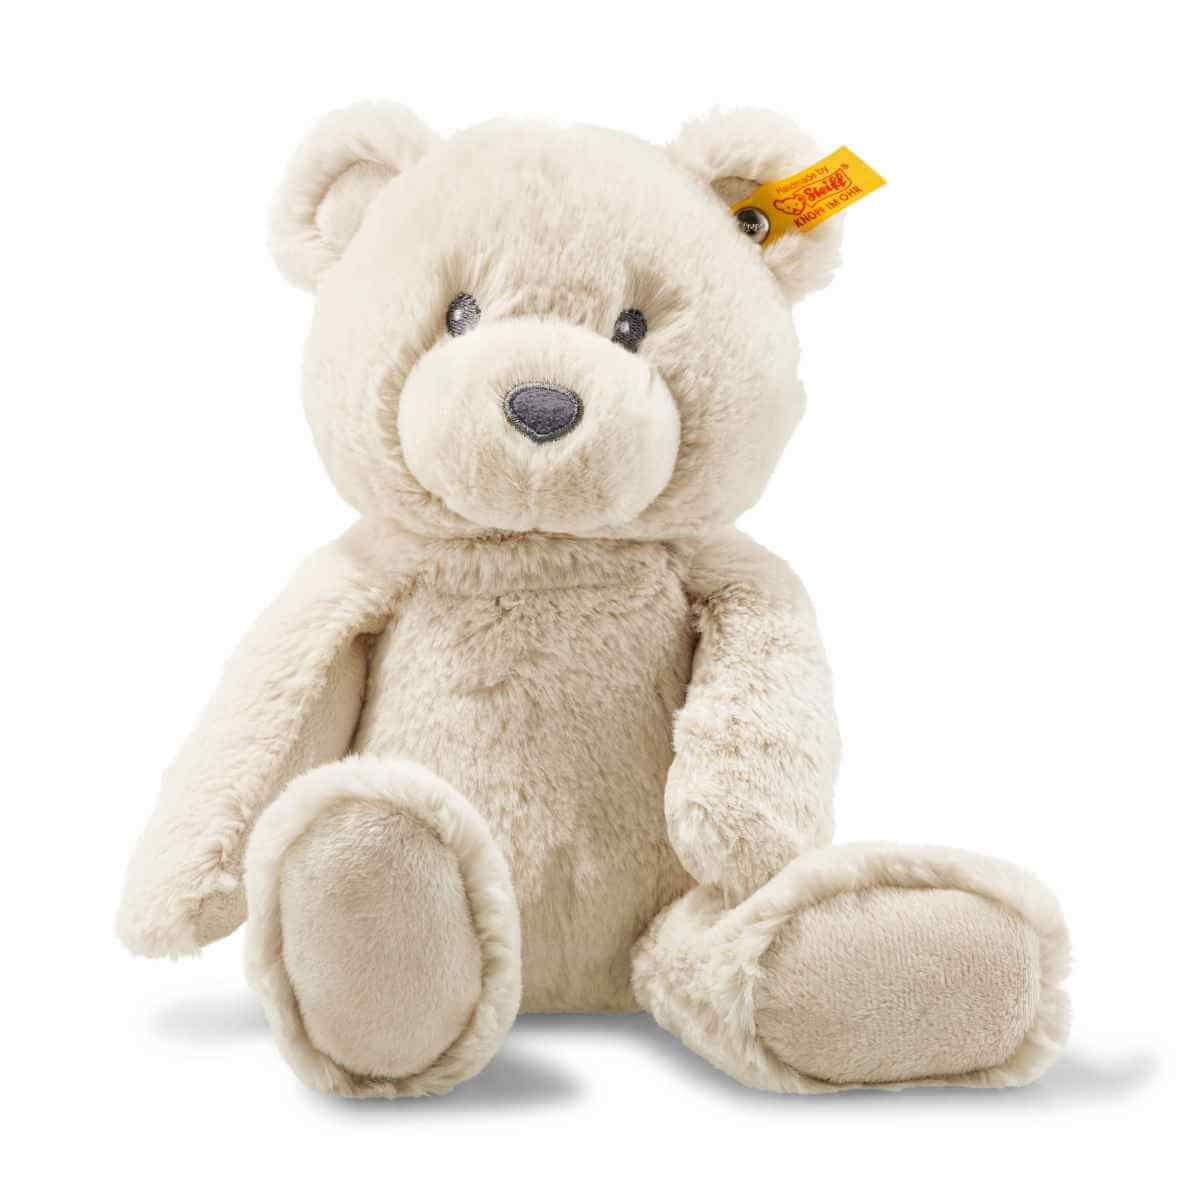 Ursul Bearzy 28cm (Soft Cuddly Friends)